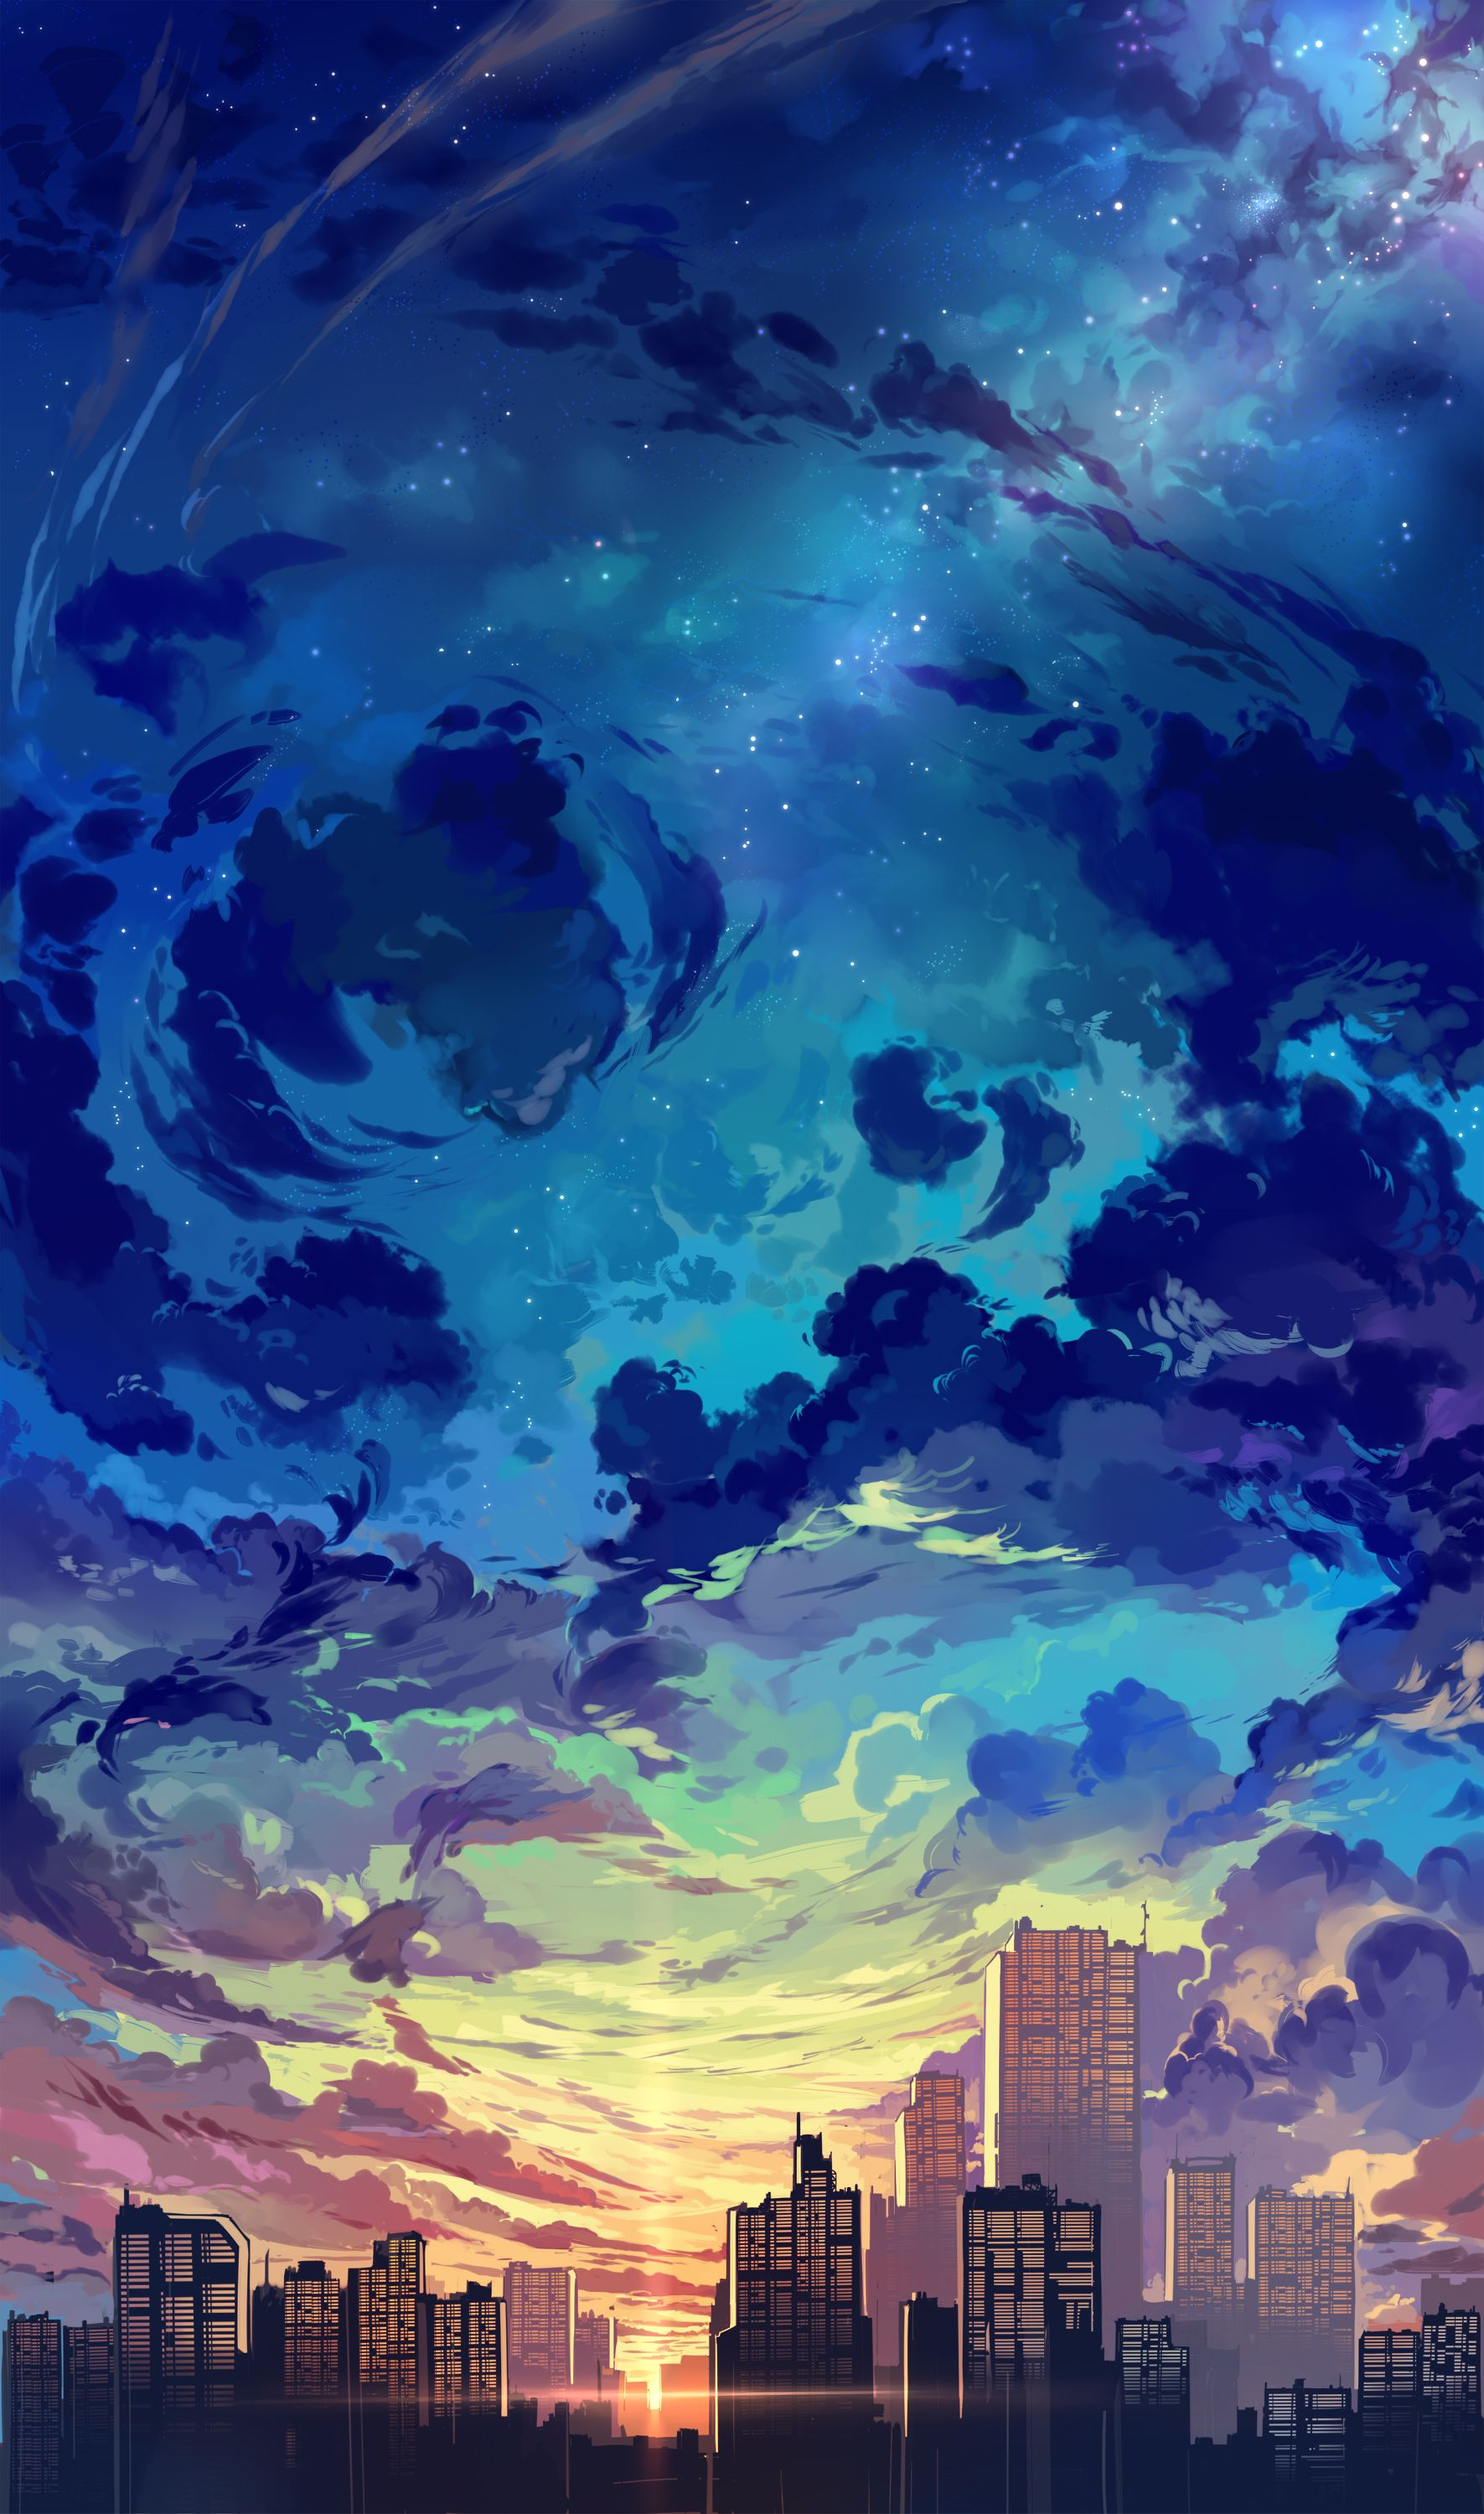 1771x3000 Evening Sky by Beth Young. : ImaginaryCityscapes